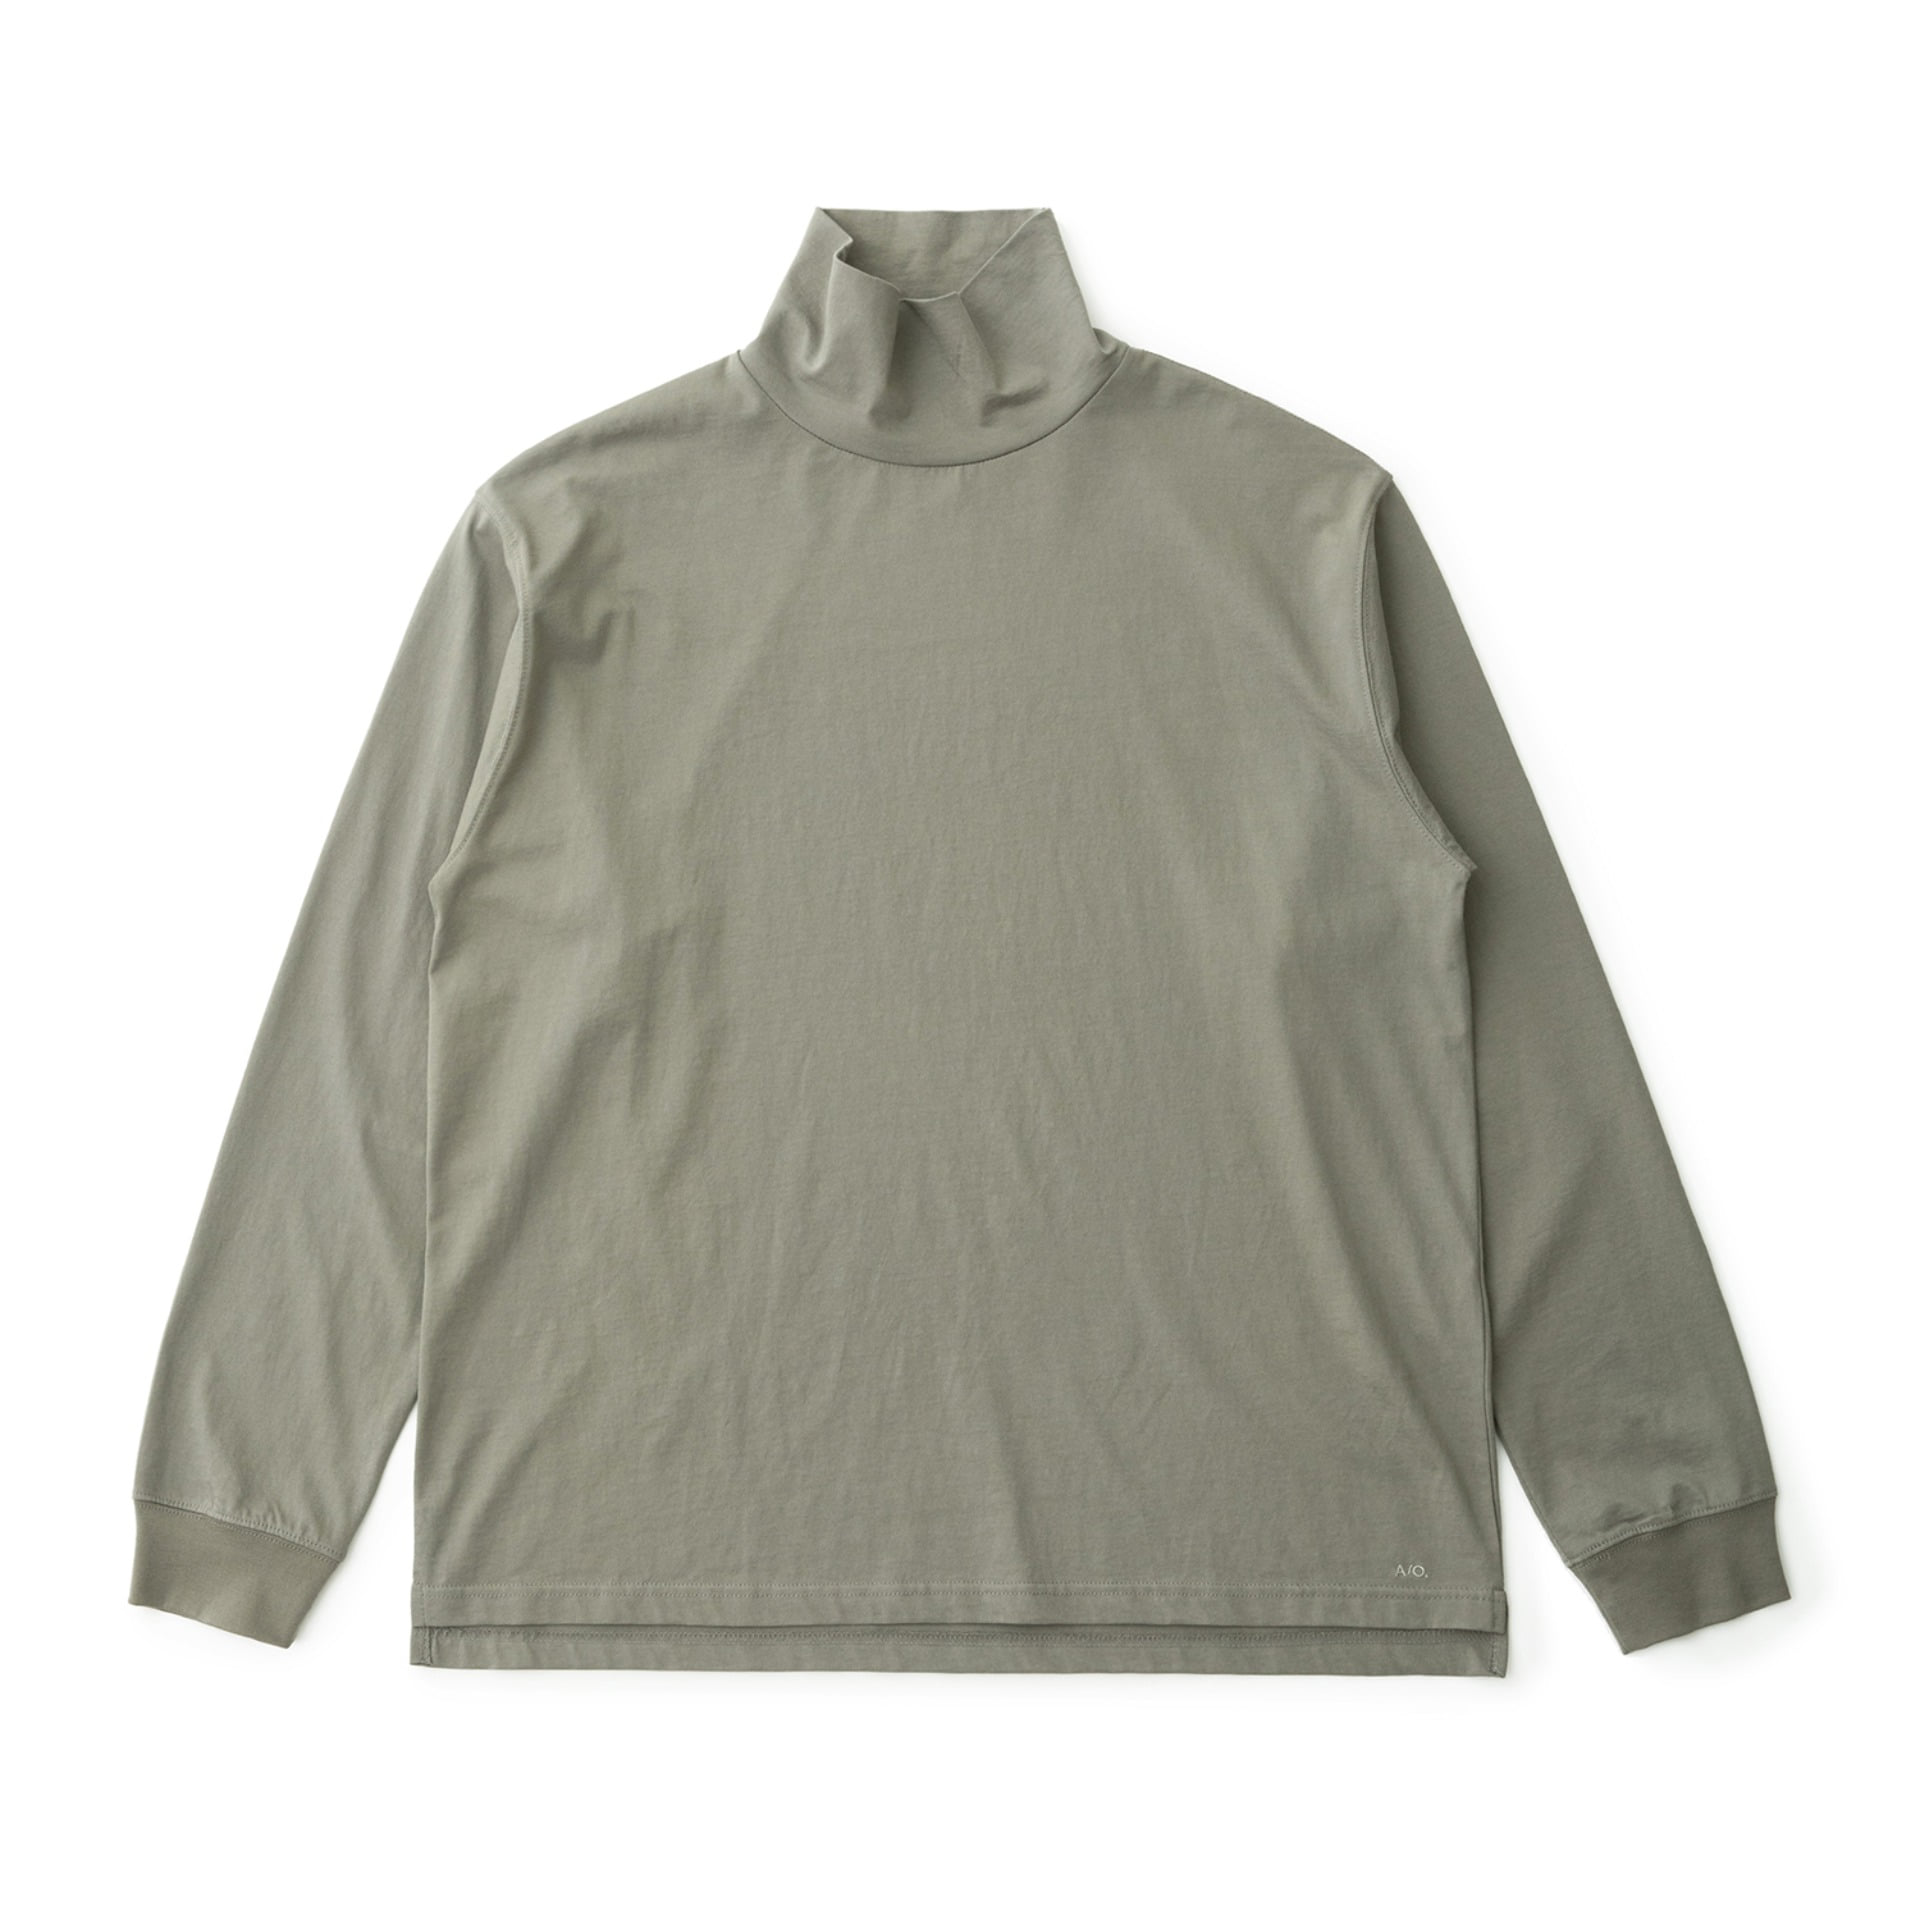 A/O Layer Hi Neck T (French Gray)